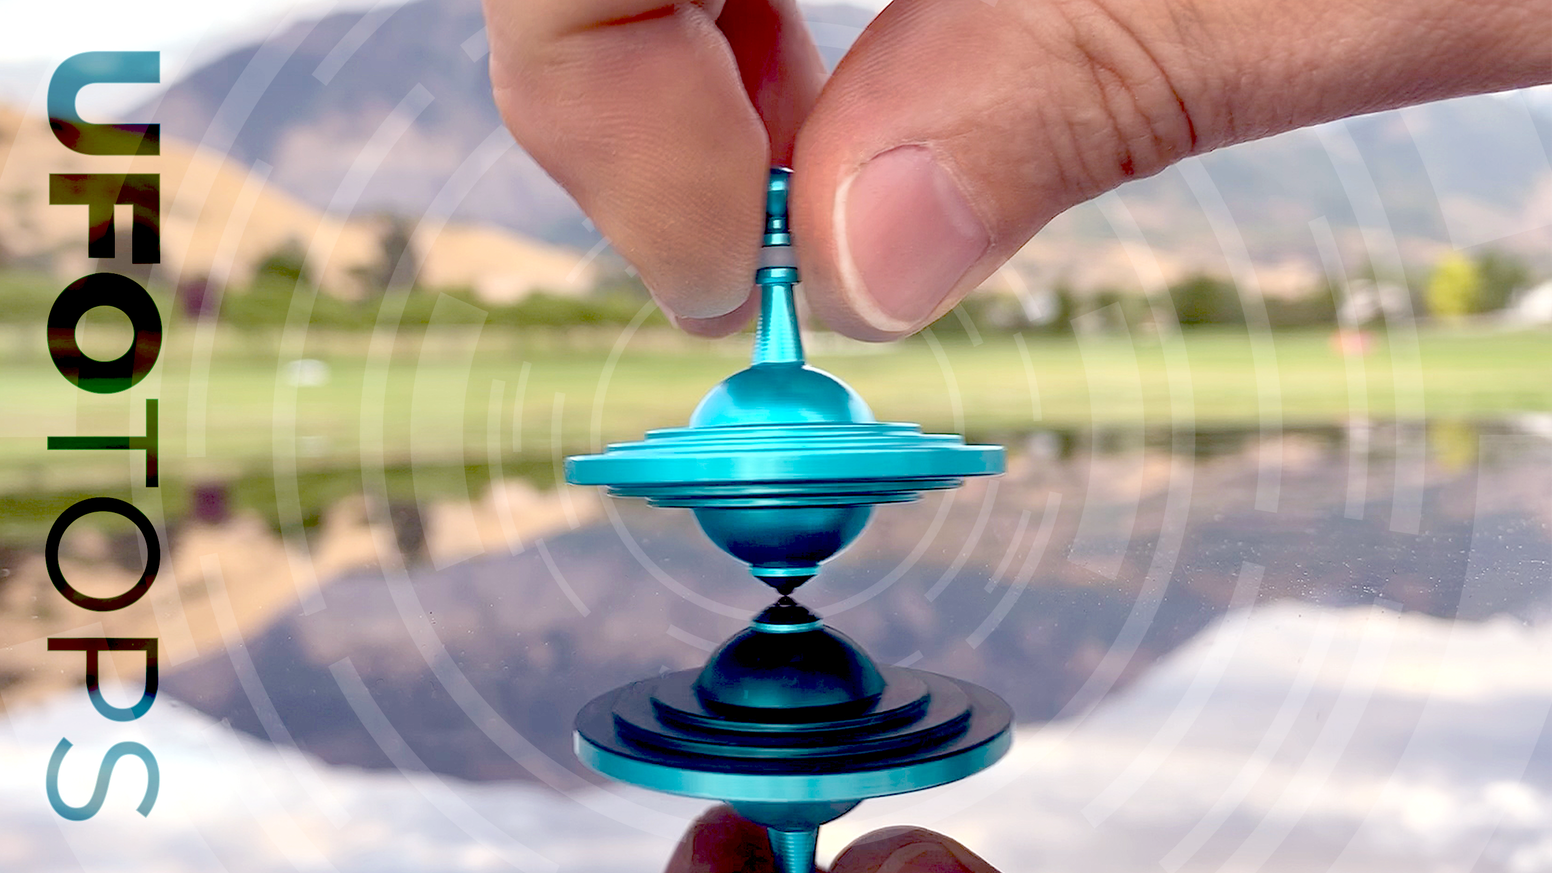 Metal spinning top with enhanced spin grip & ceramic ball tip to produce long spin times. Based on documented UFO sightings!